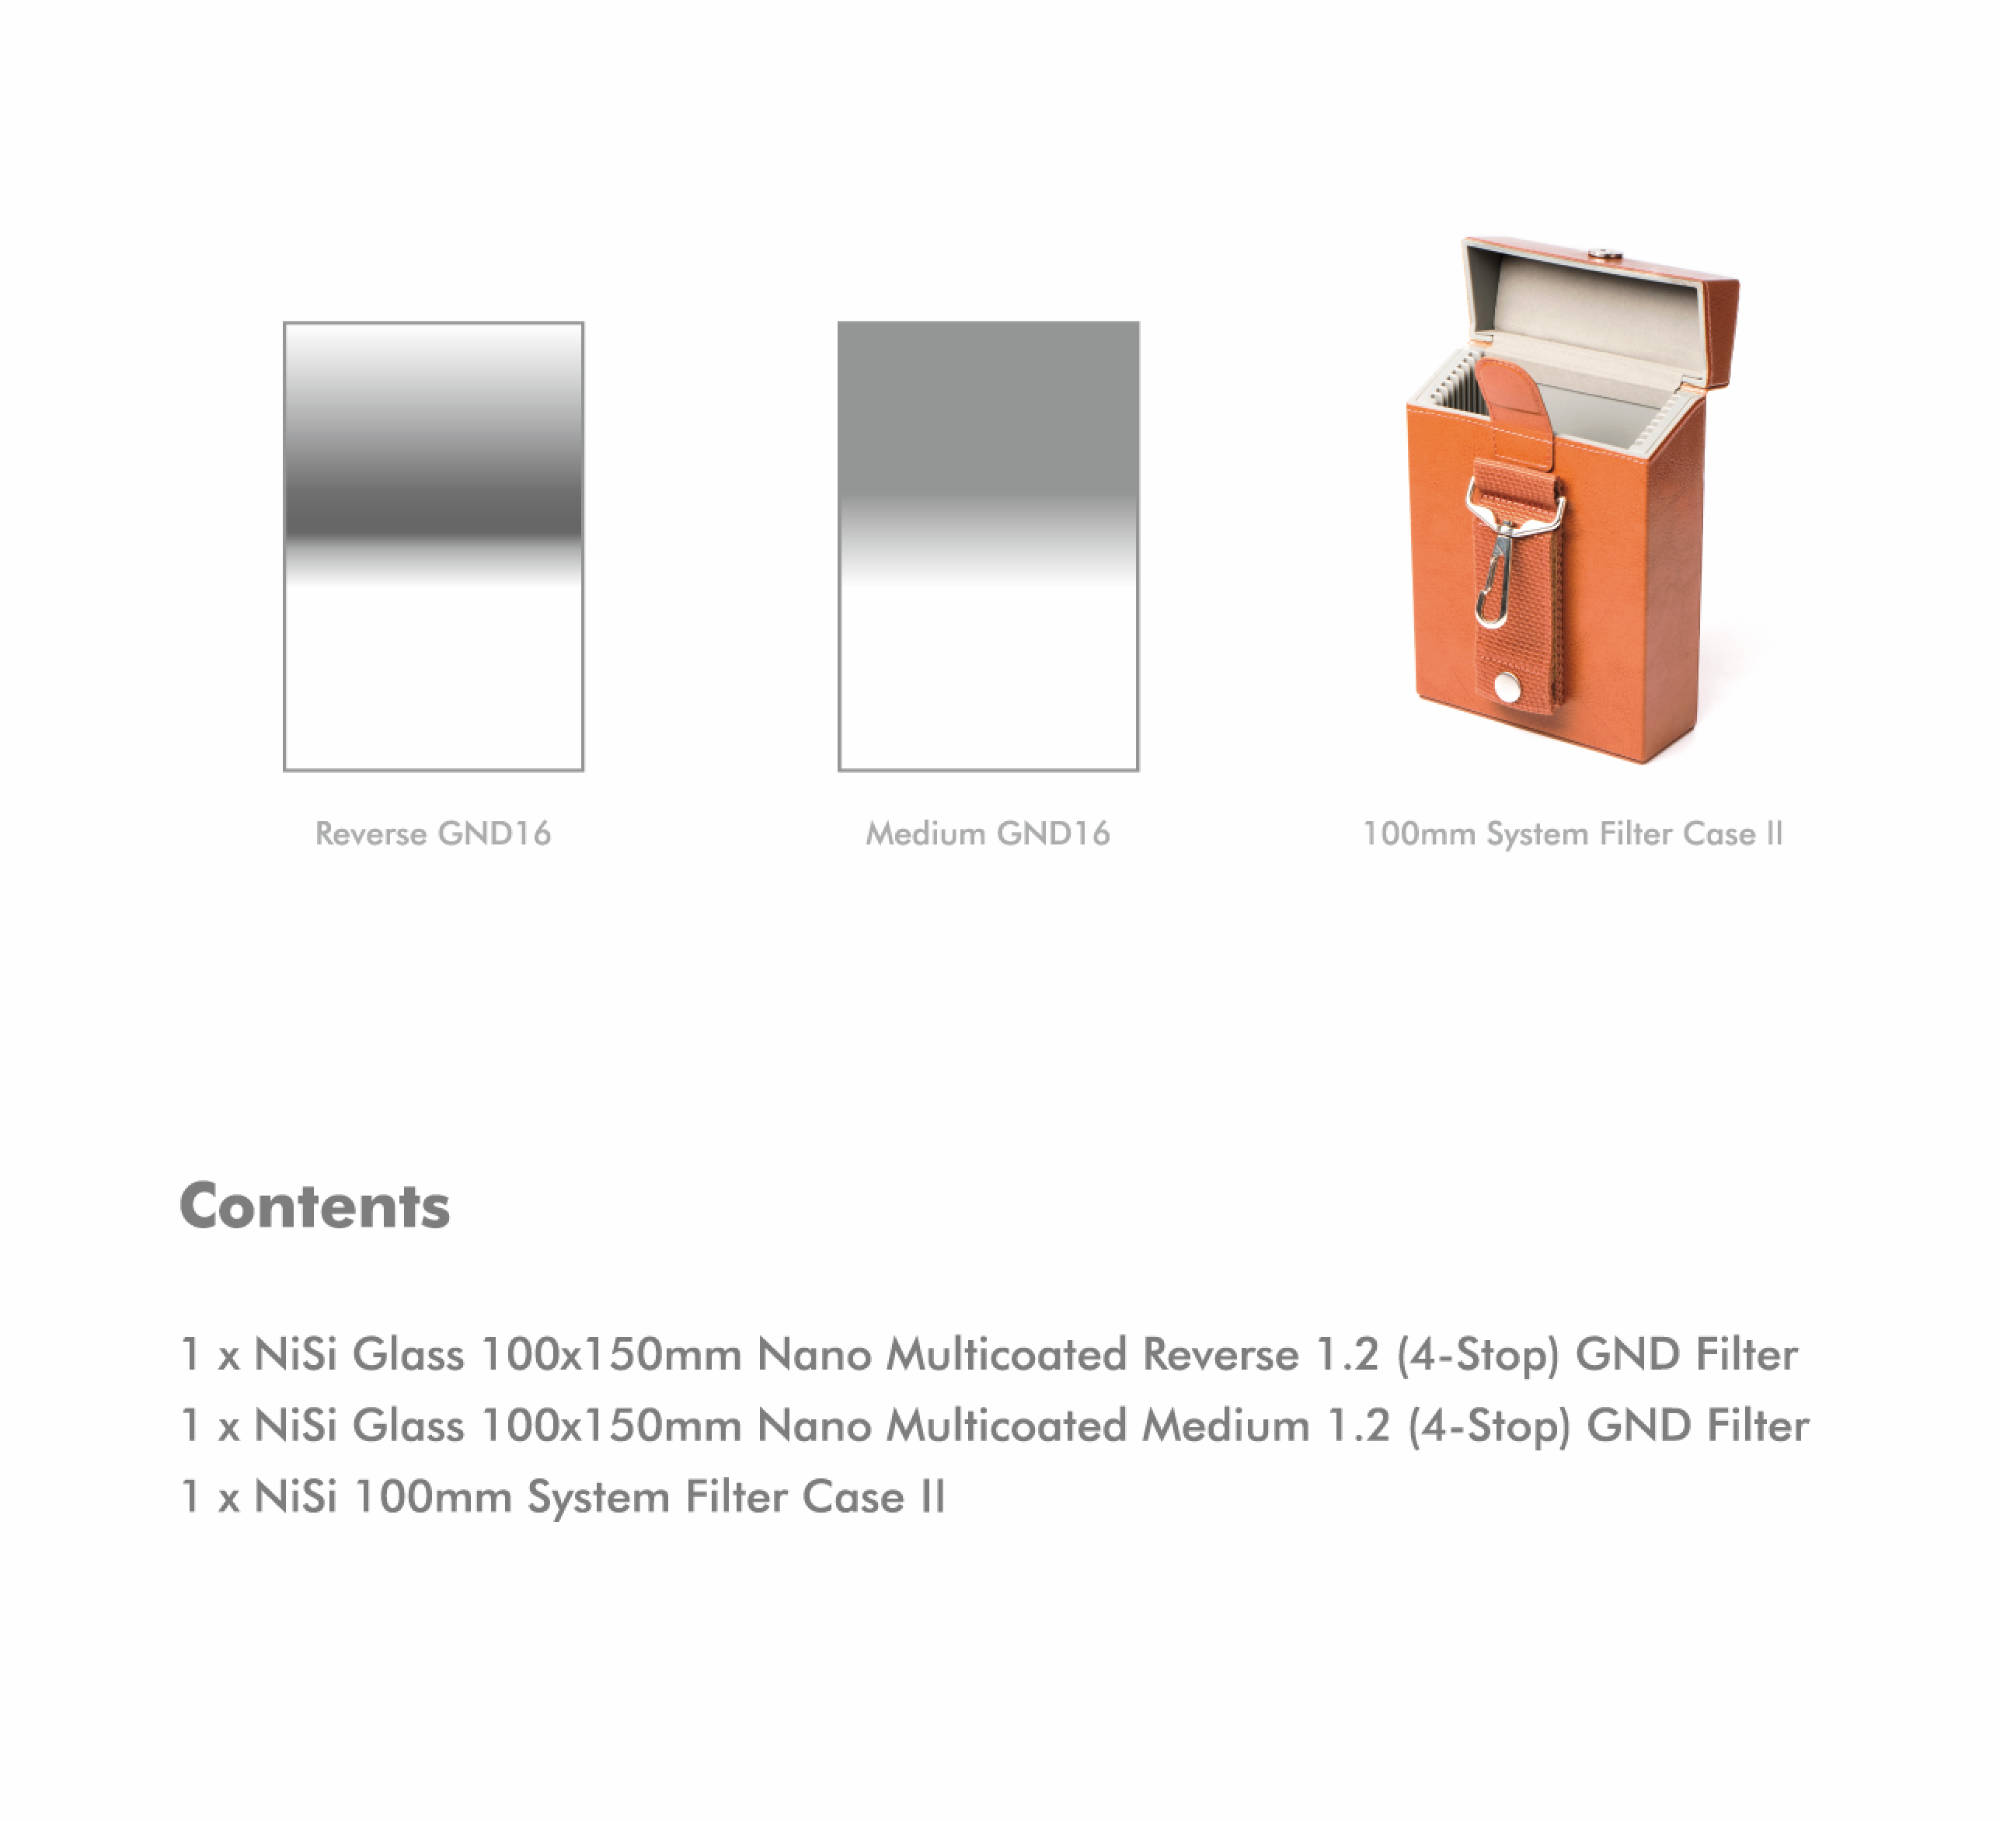 Ryan Fowler Photography Nisi Filters 100mm Sunrise Sunset Gnd Aluminium Filter Holder Kit V5 Pro Special Edition Exclusive To Australia And New